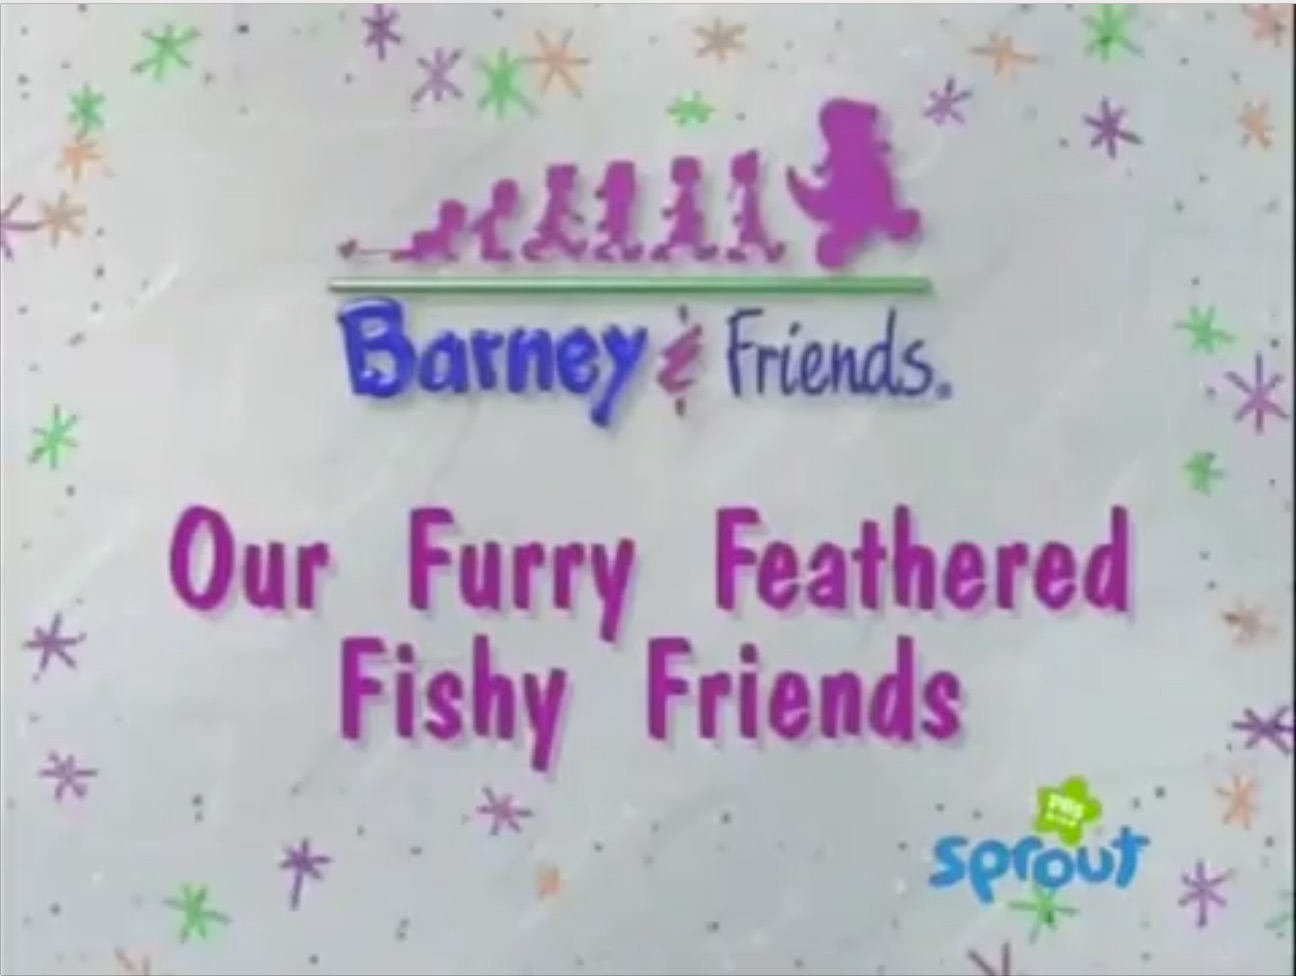 Our Furry Feathered Fishy Friends